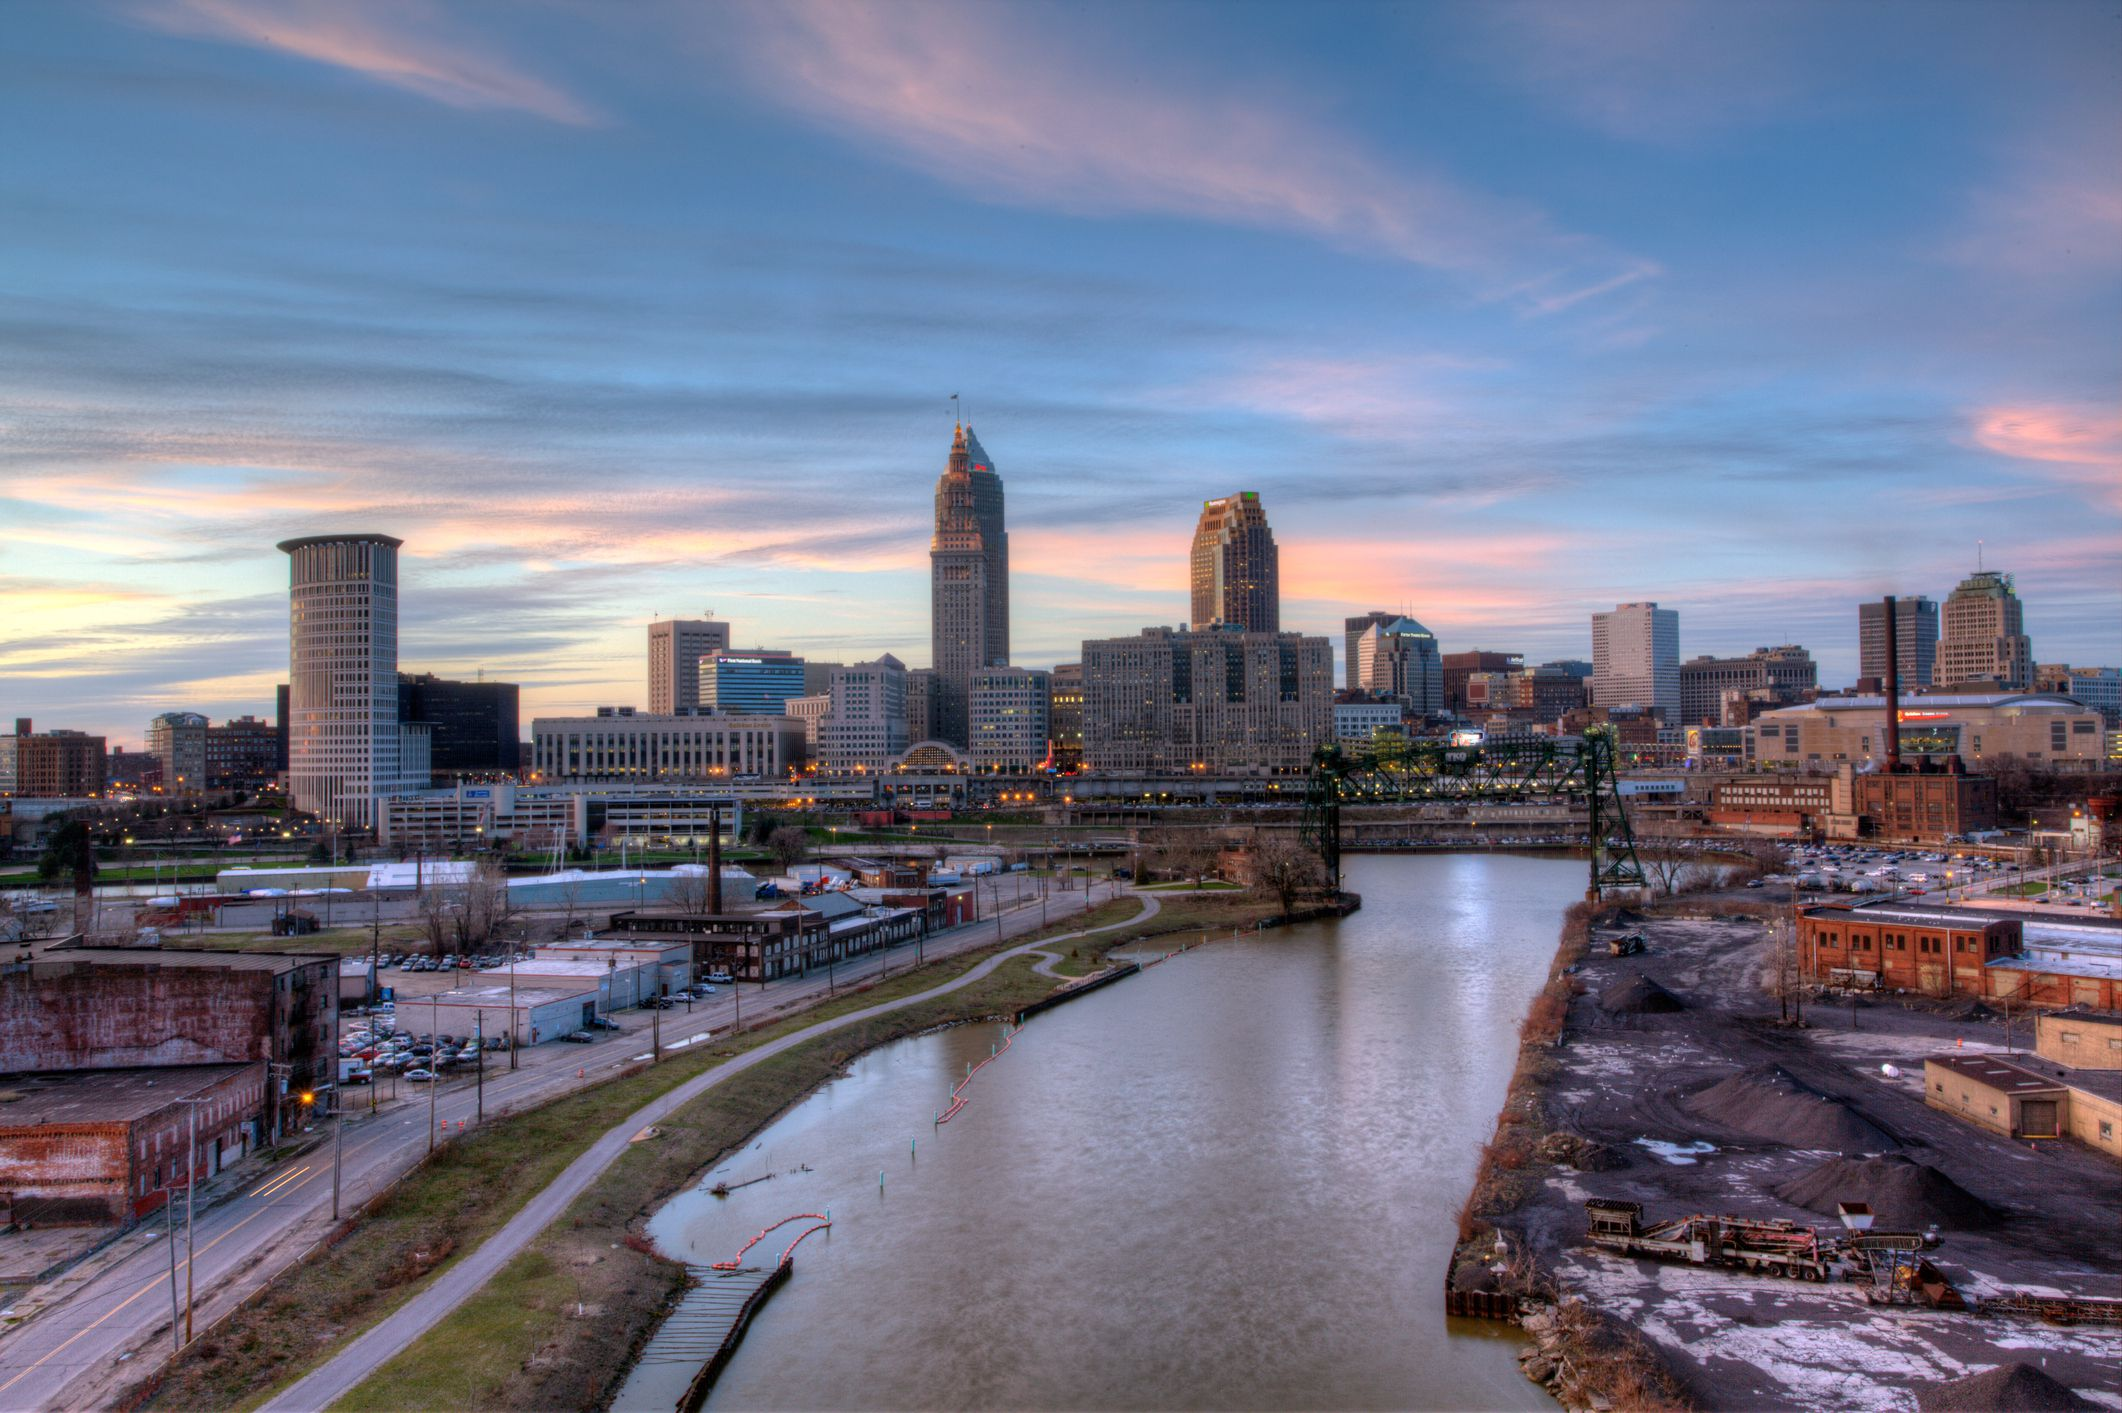 How to apply for a us passport in cleveland ohio downtown skyline cleveland ohio at sunset aiddatafo Images